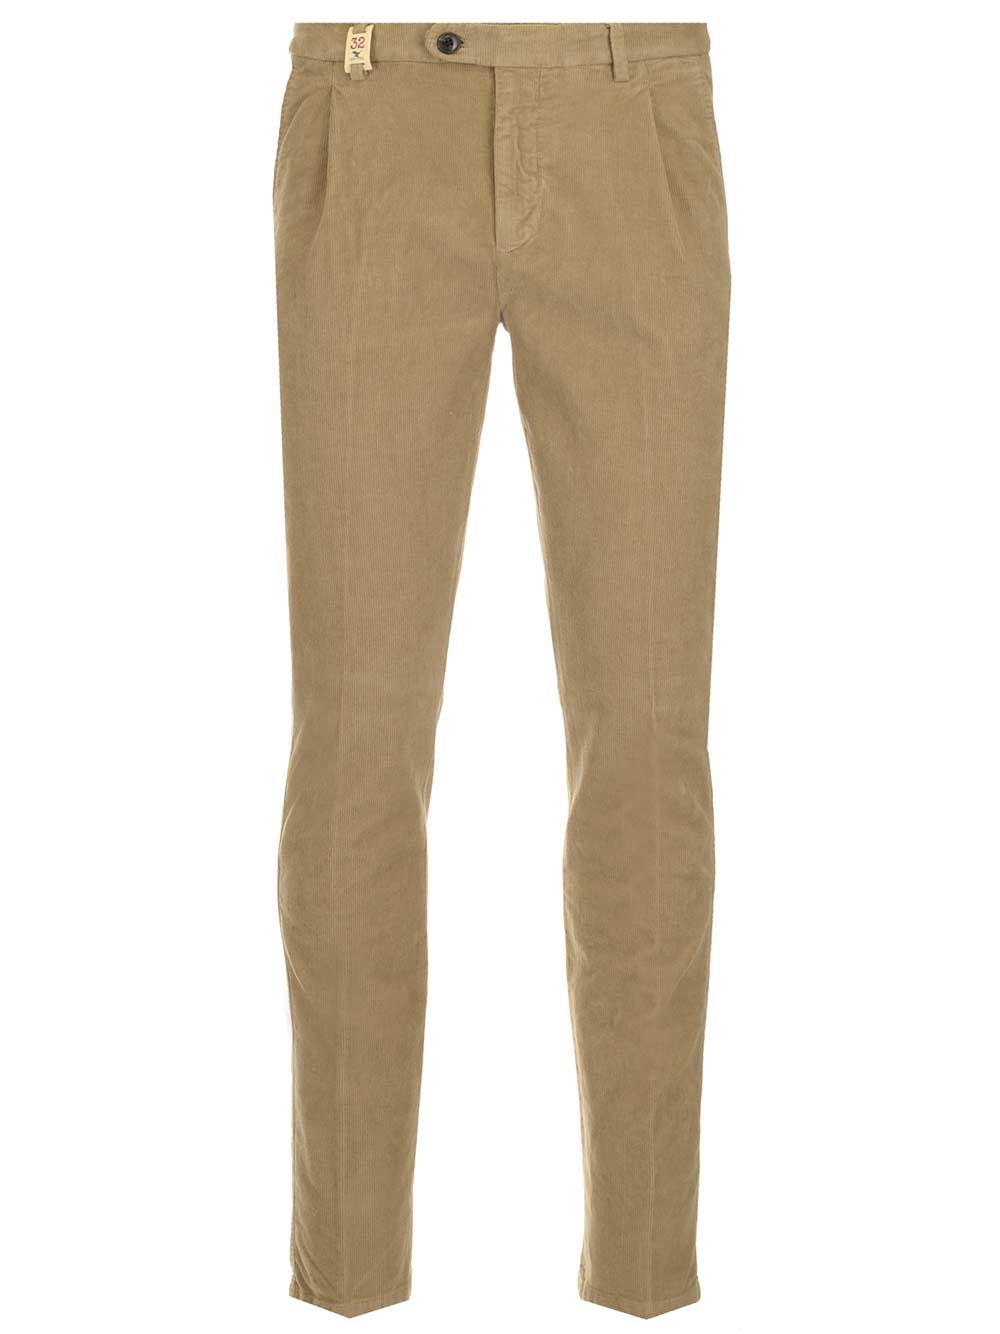 BARMAS Beige Velvet Ribbed Trousers